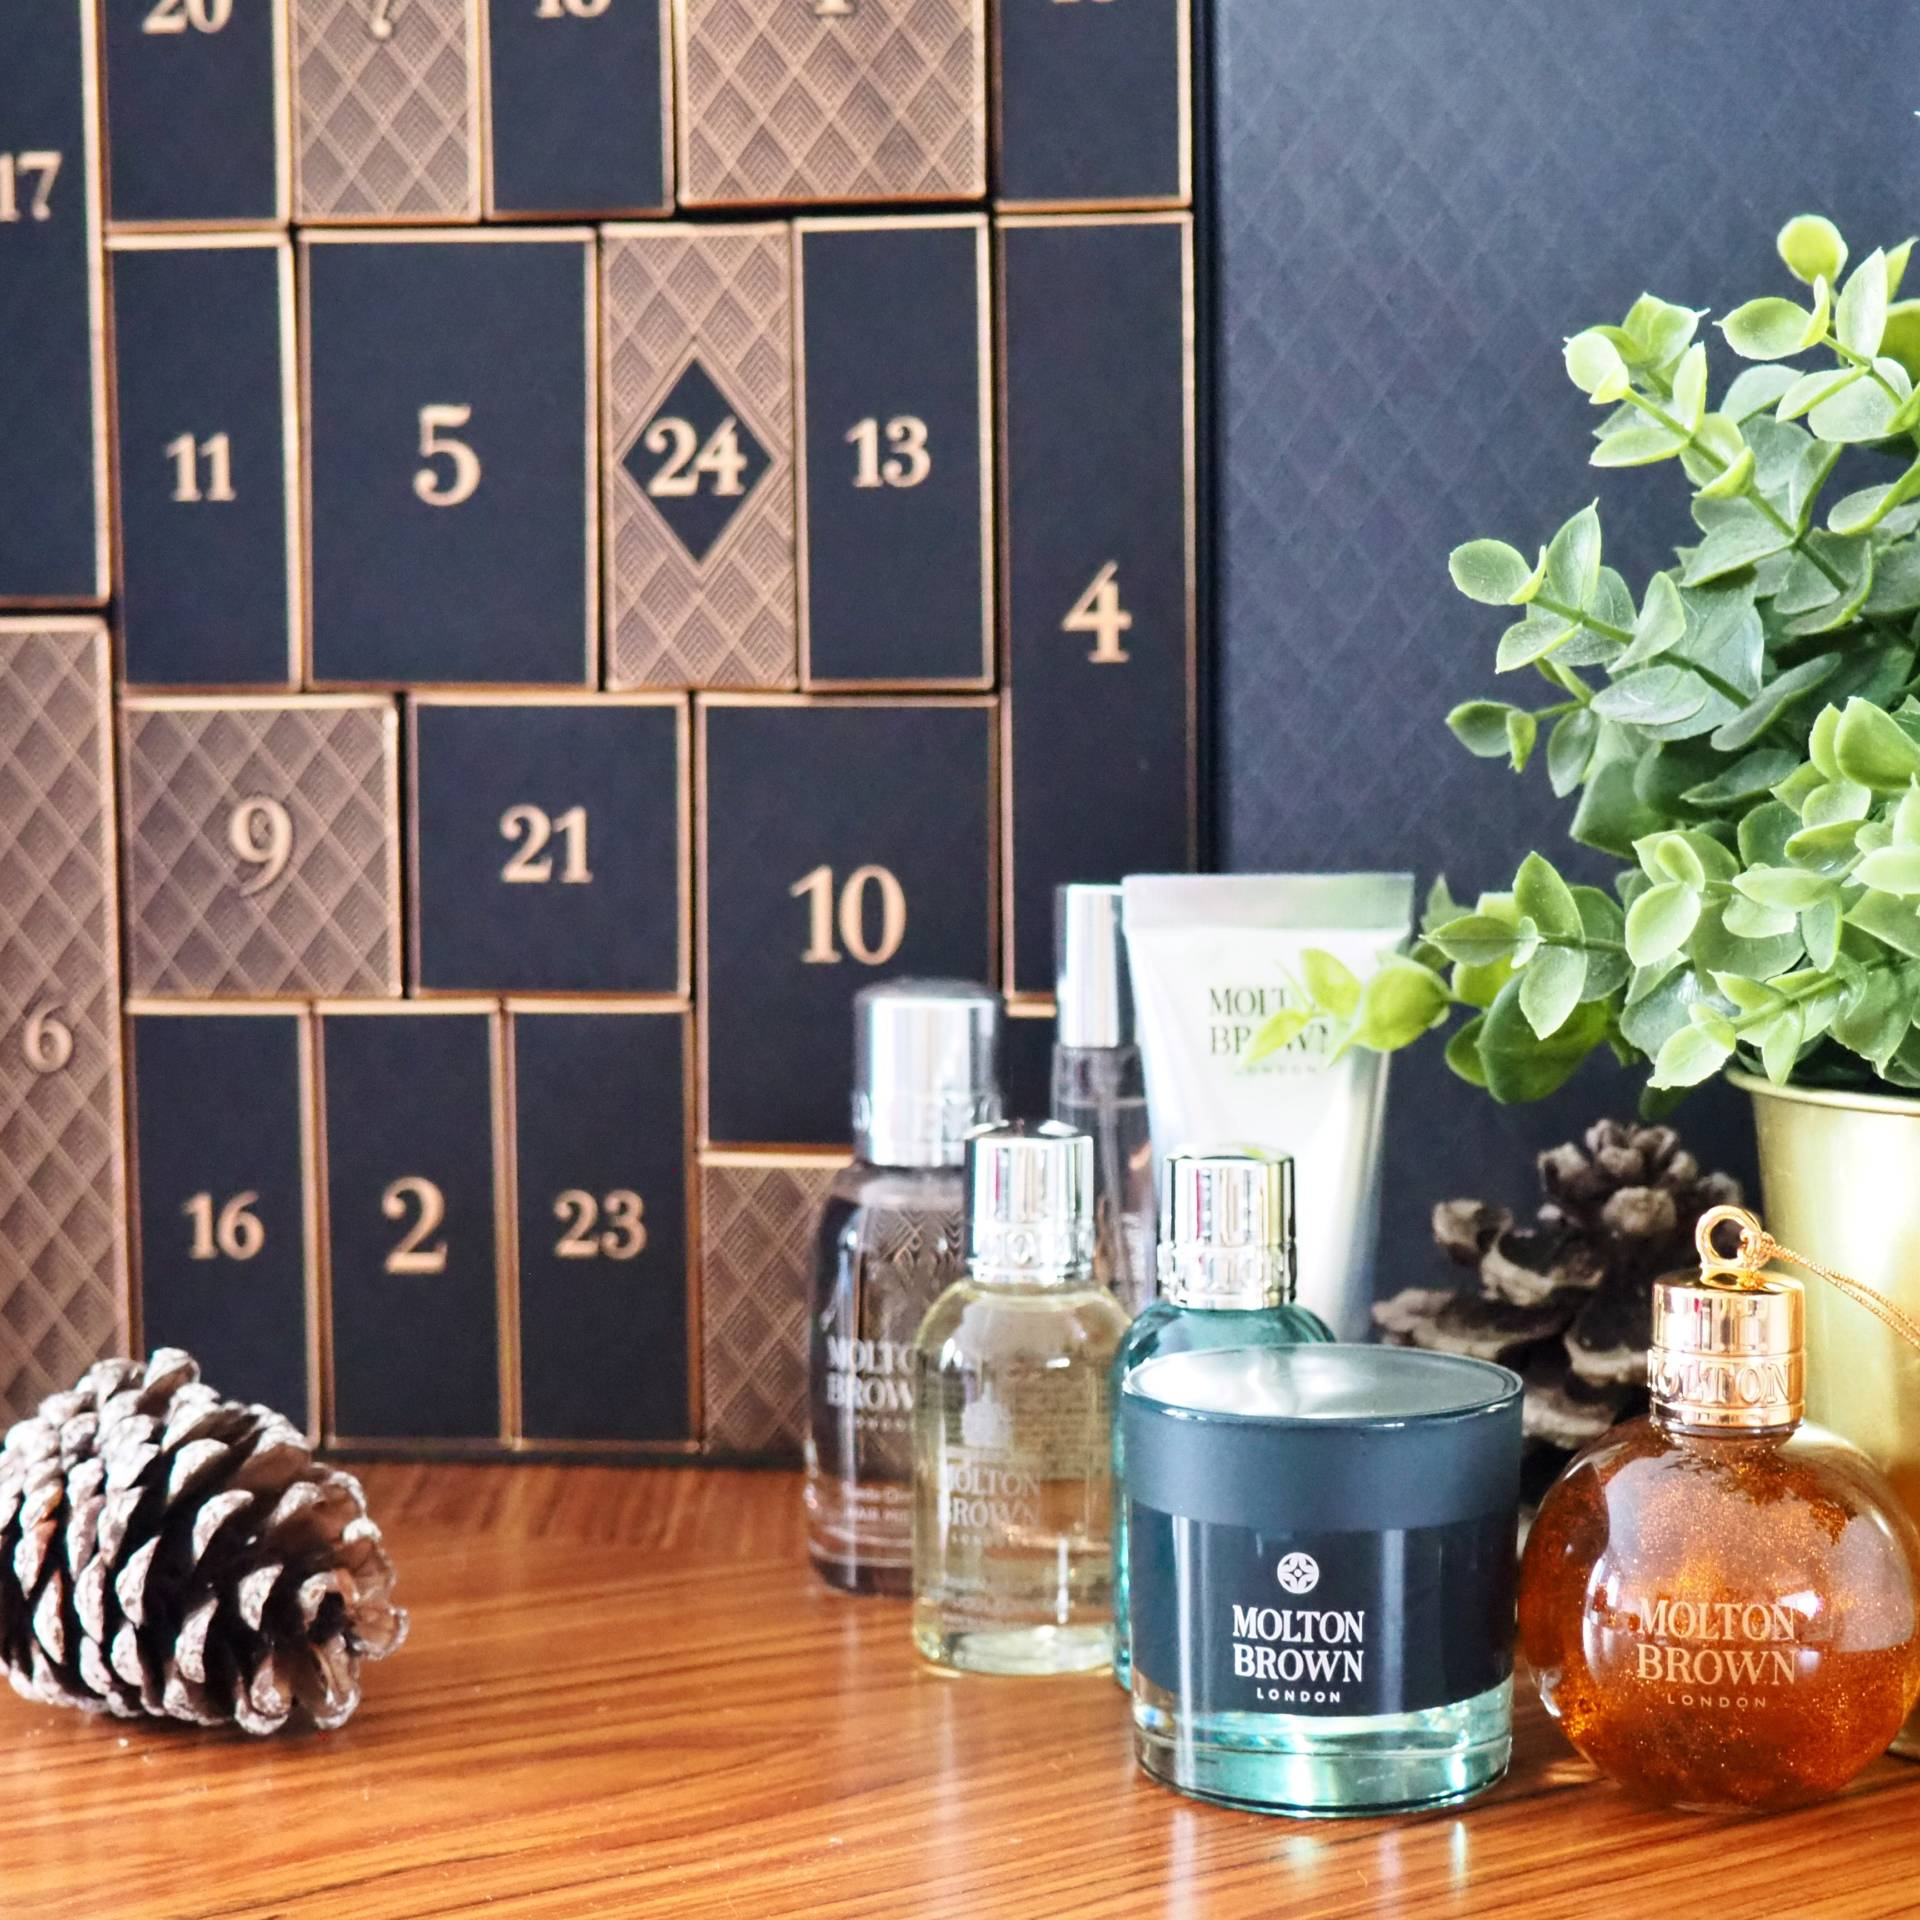 Molton-Brown-Advent-Calendar_2019